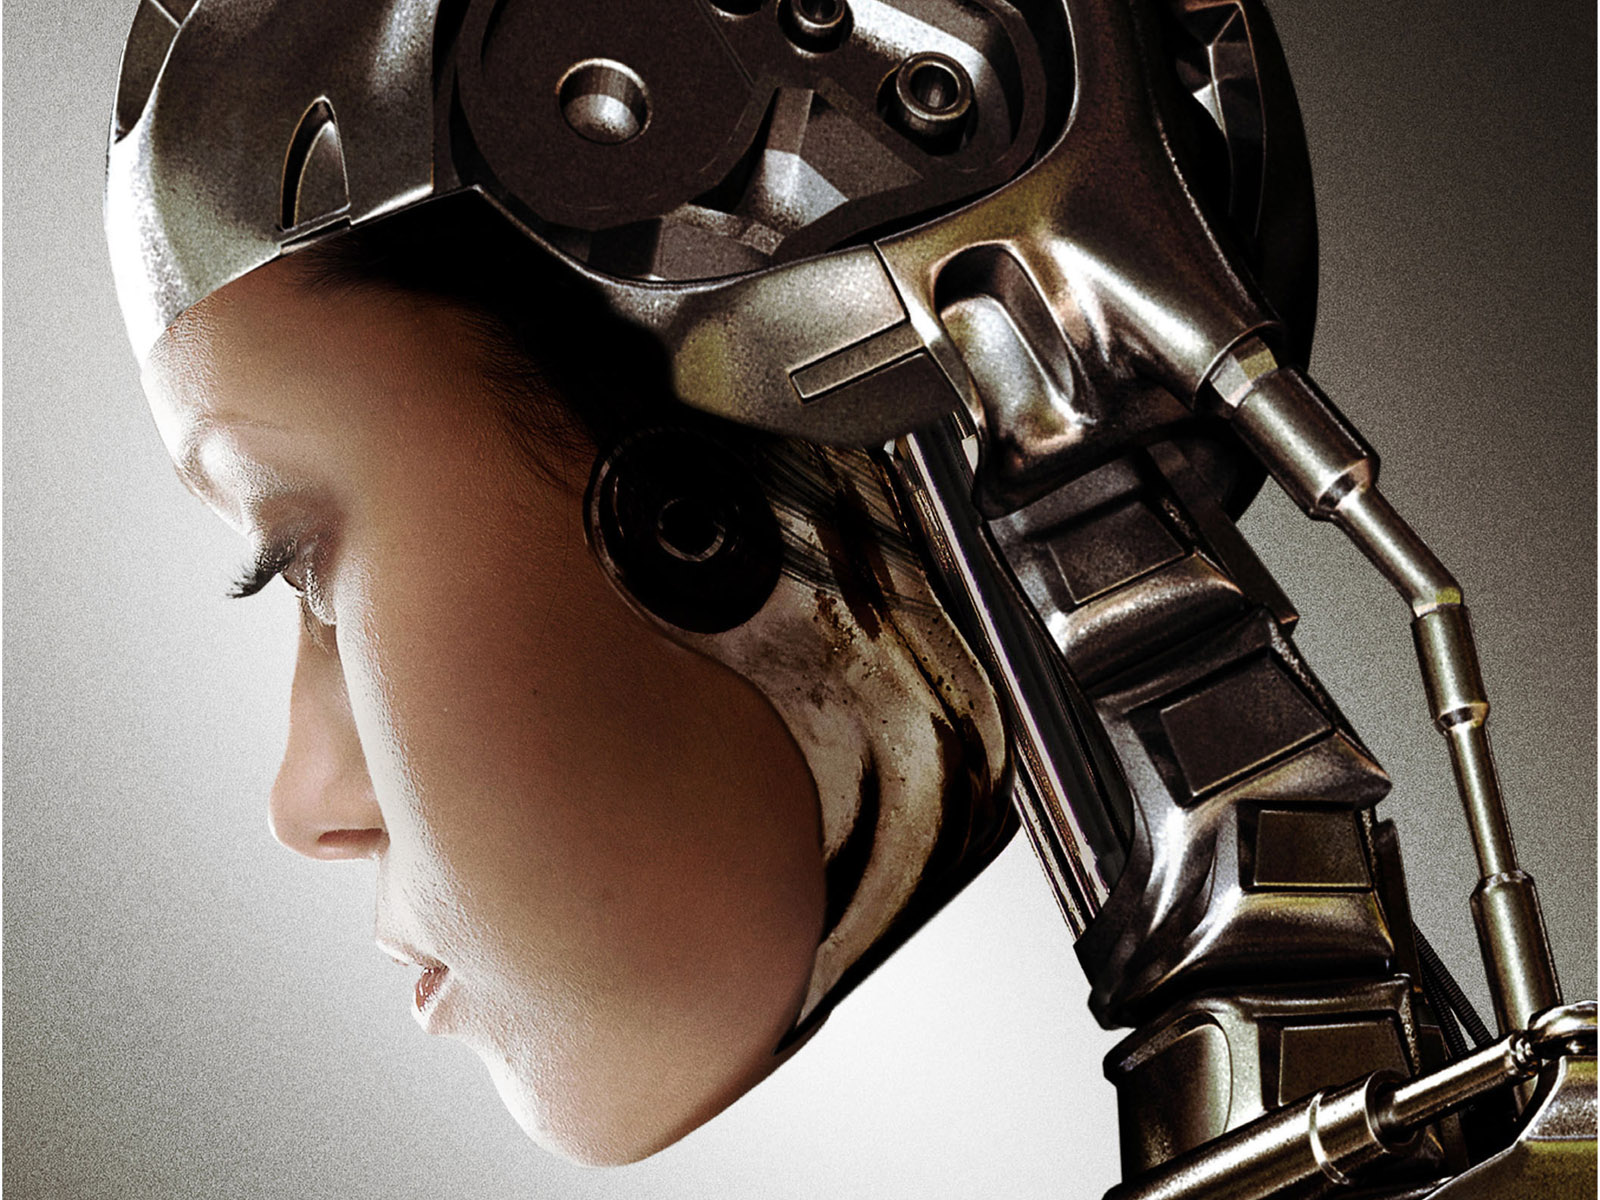 http://1.bp.blogspot.com/-3ISmvH6_OXM/TV0dMAYjEMI/AAAAAAAABZ8/RJlL-hUAT48/s1600/1295431425-terminator-the-sarah-connor-chronicles-wallpaper.jpg